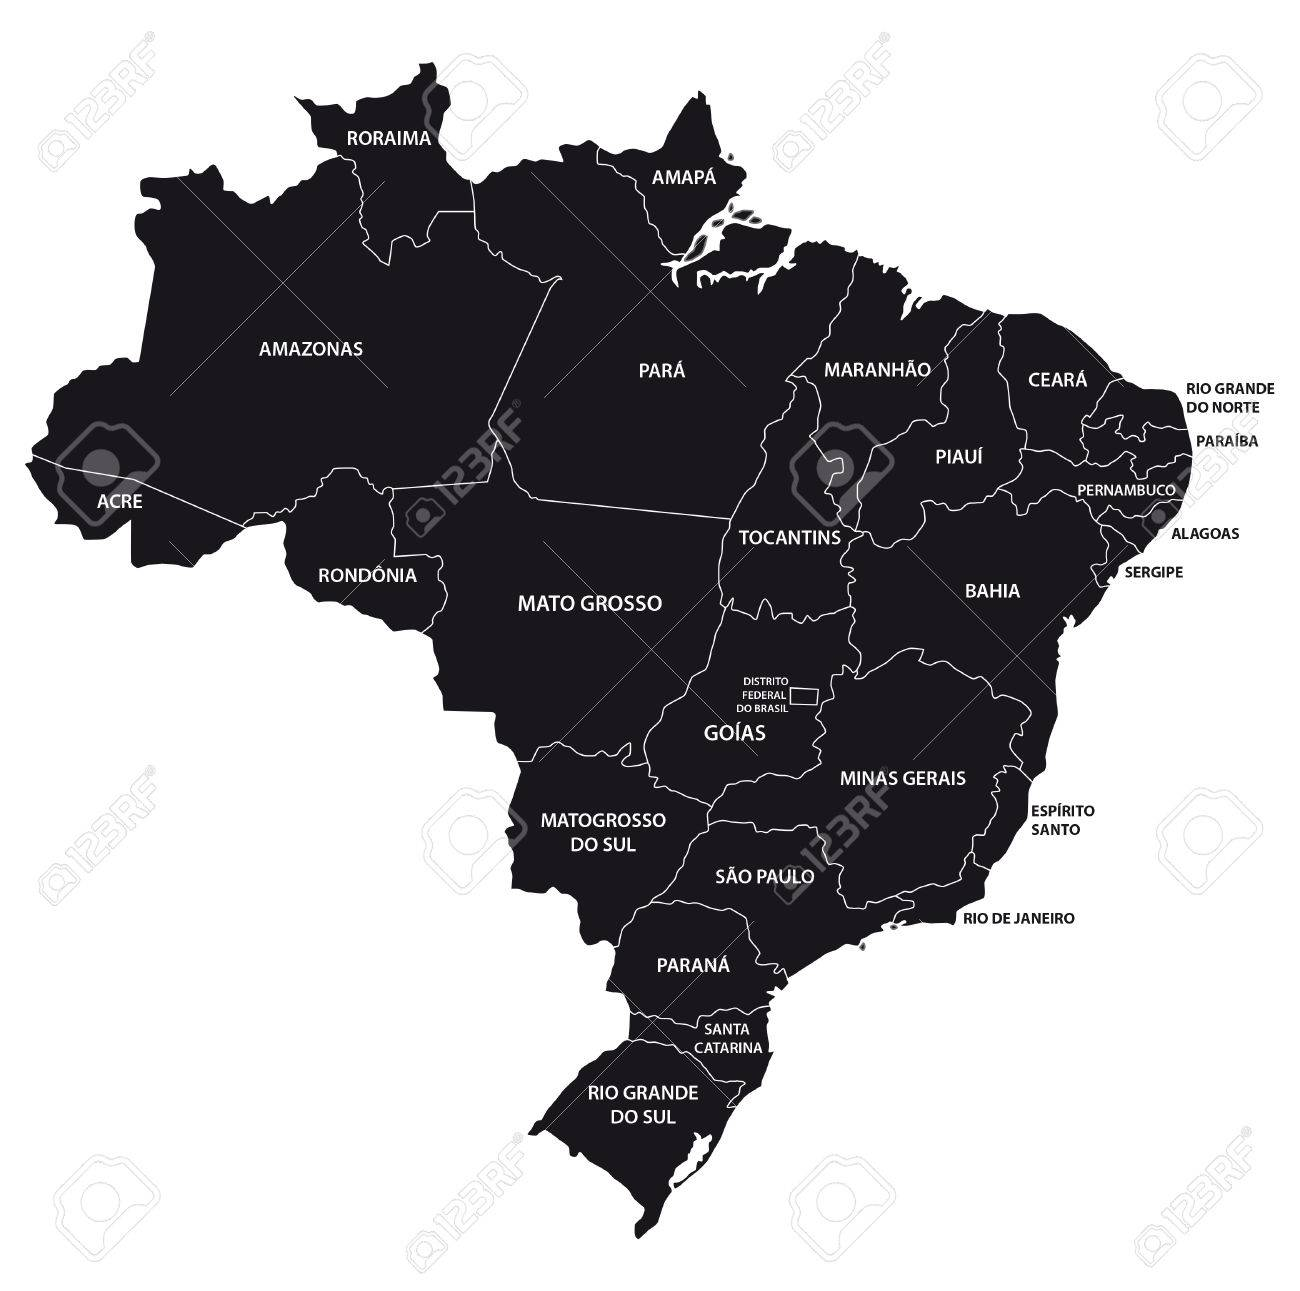 Brazil Administrative Map In Black And White Royalty Free Cliparts